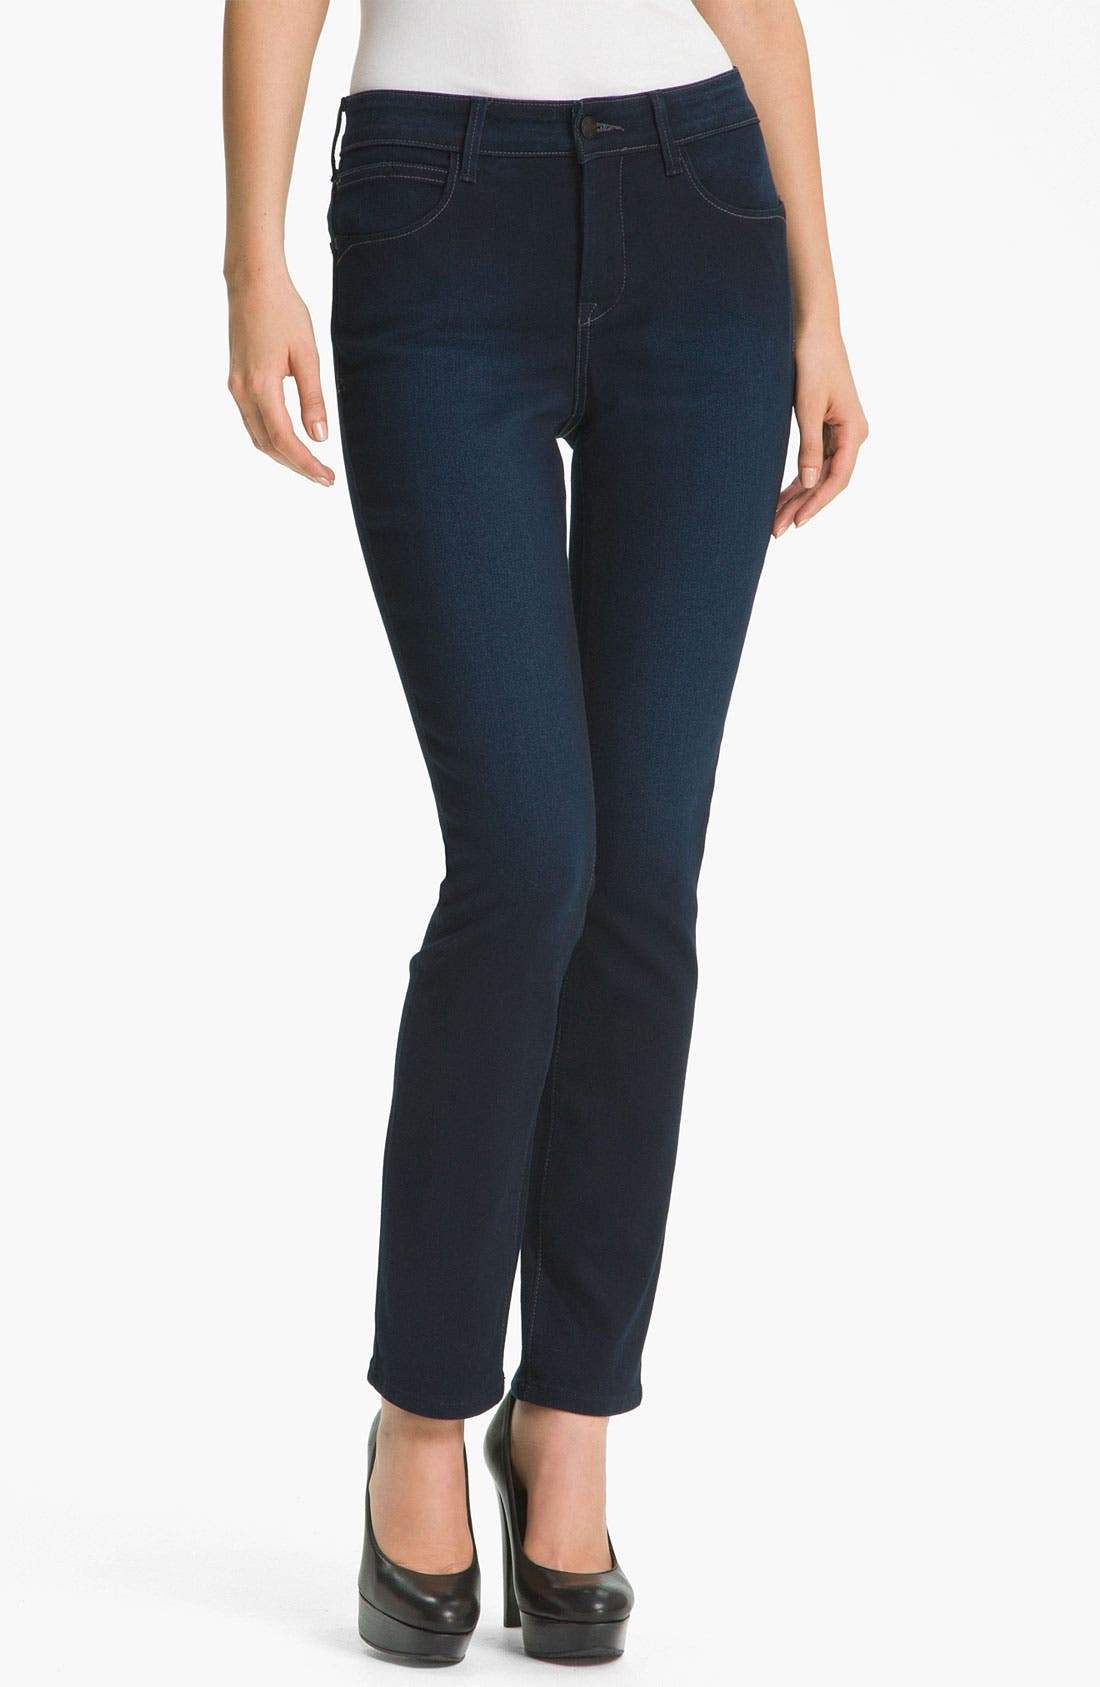 Alternate Image 1 Selected - NYDJ 'Jade' Denim Leggings (Petite)